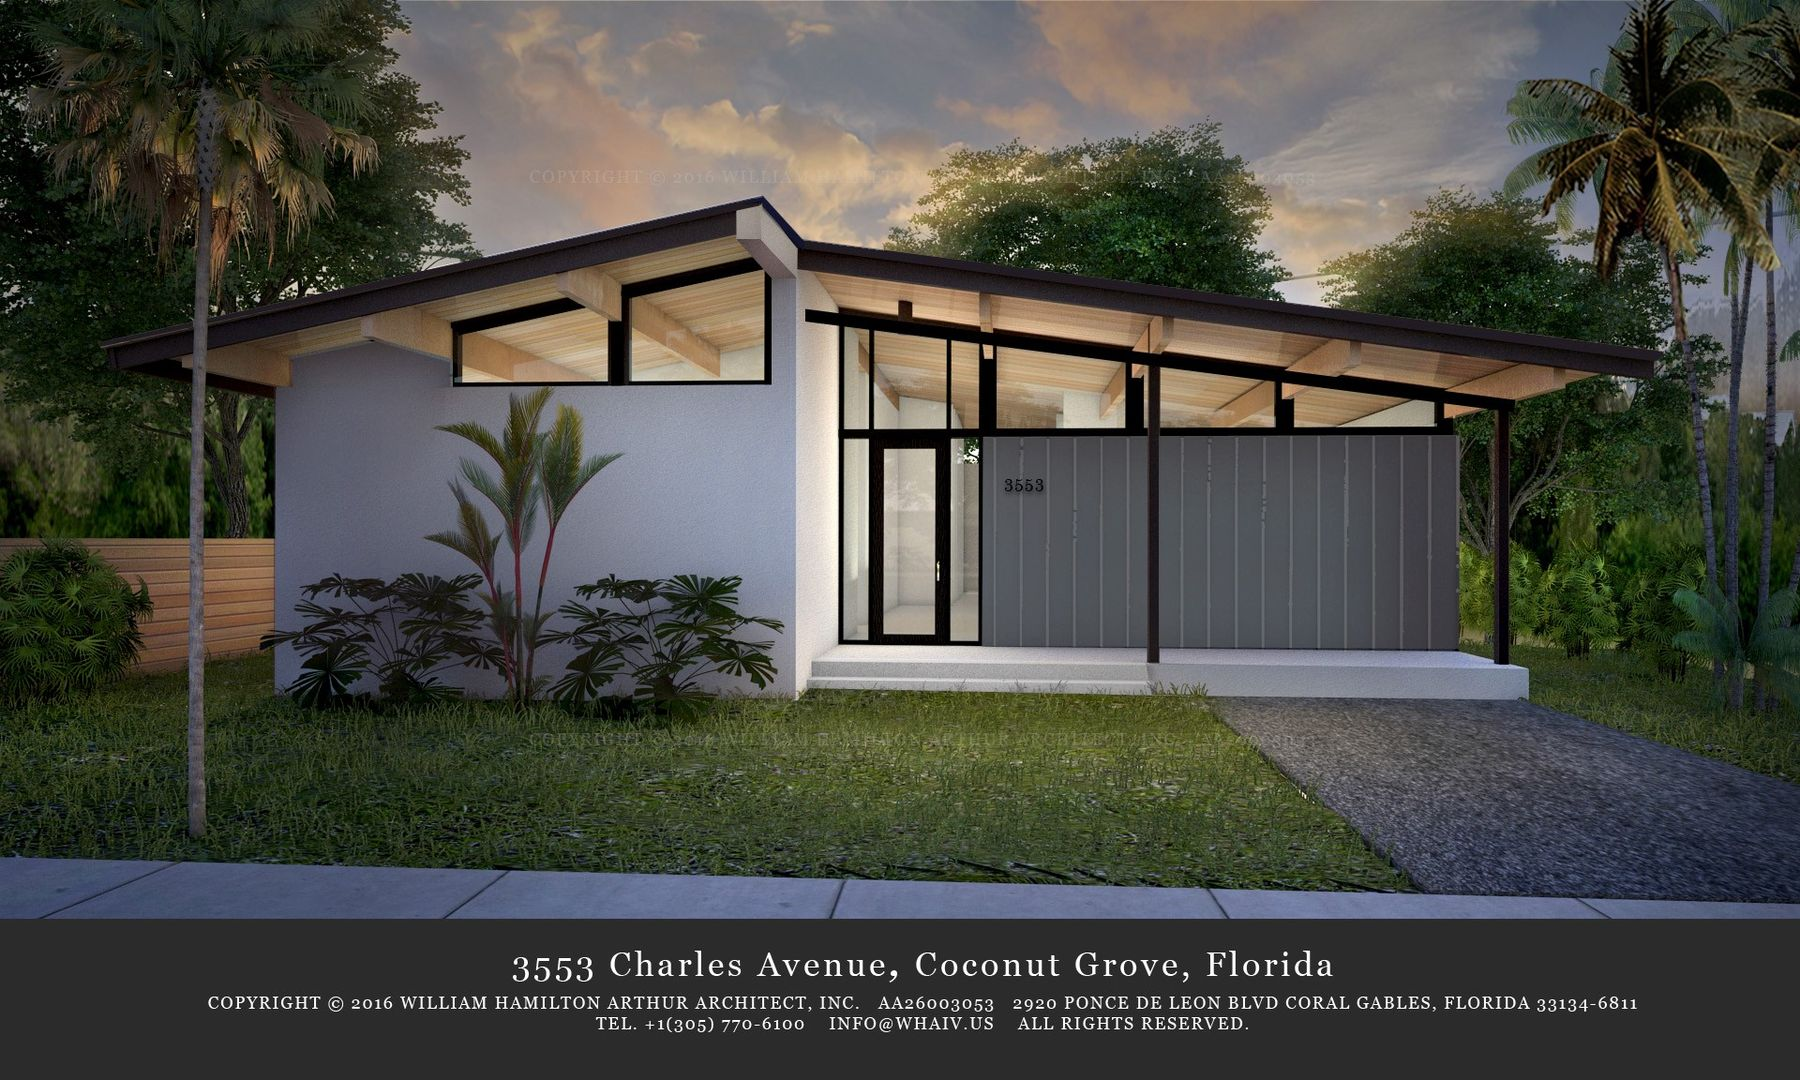 3553 Charles Avenue Coconut Grove